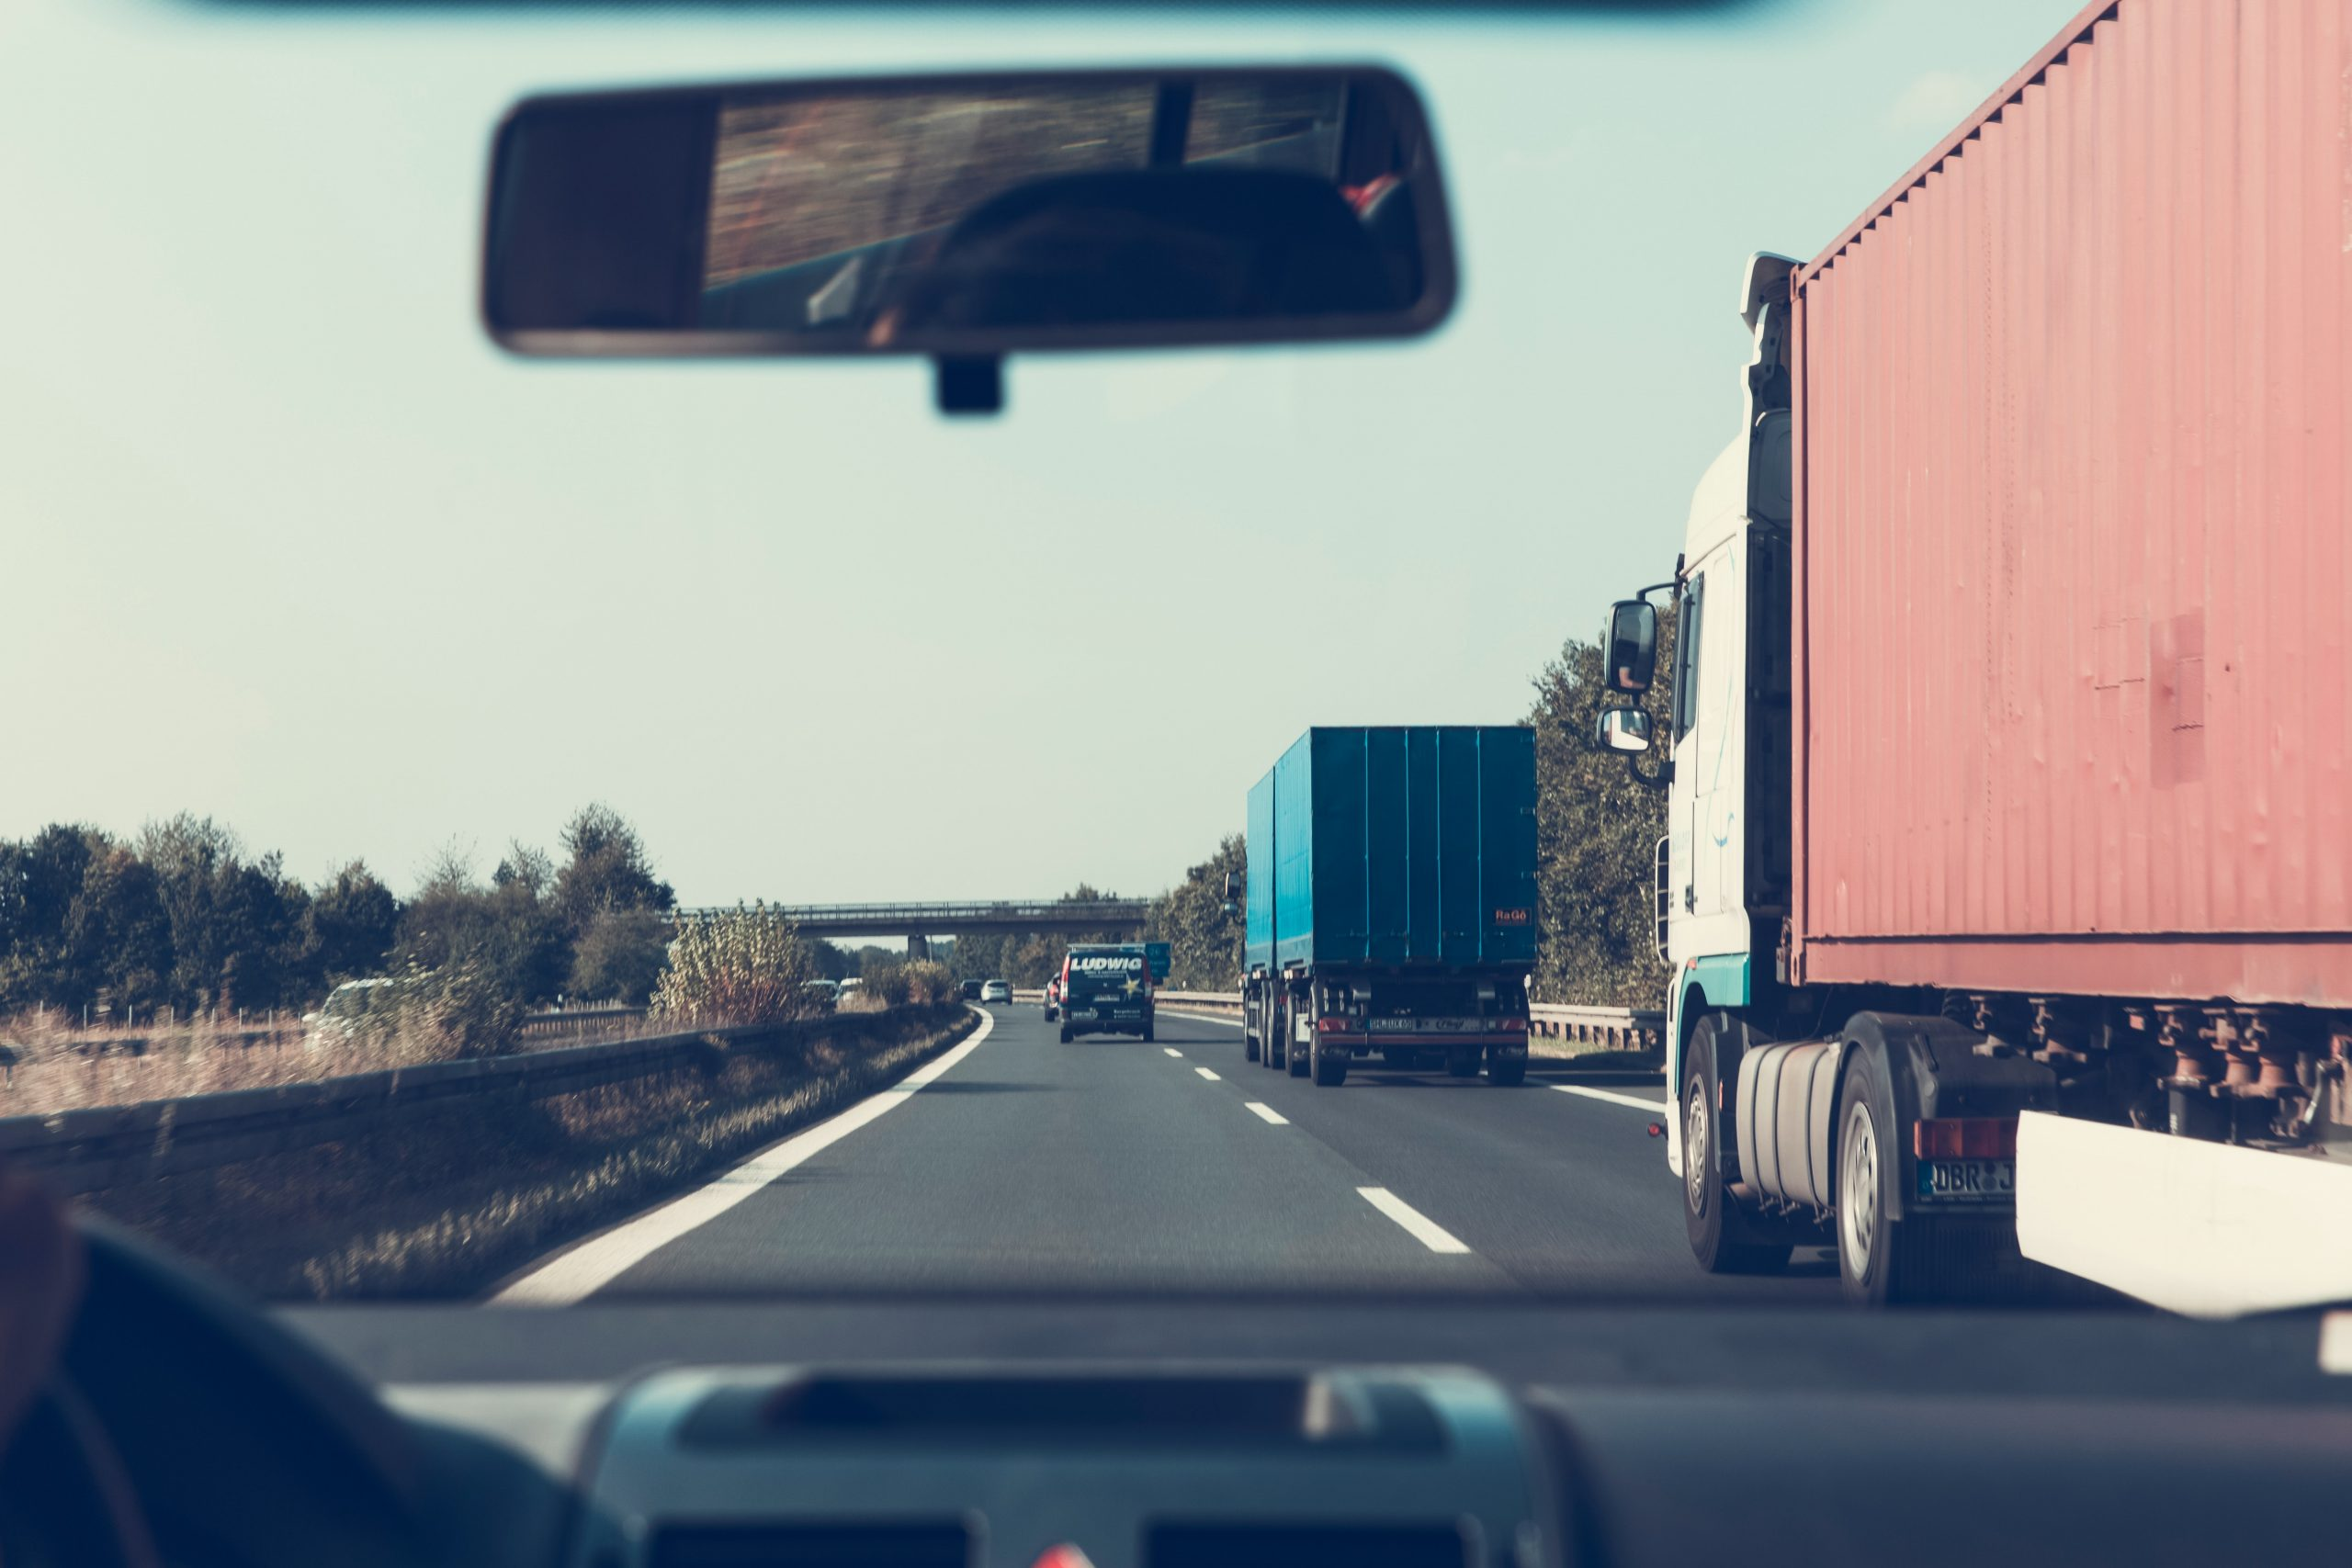 drivers view of driving on road with semi trucks